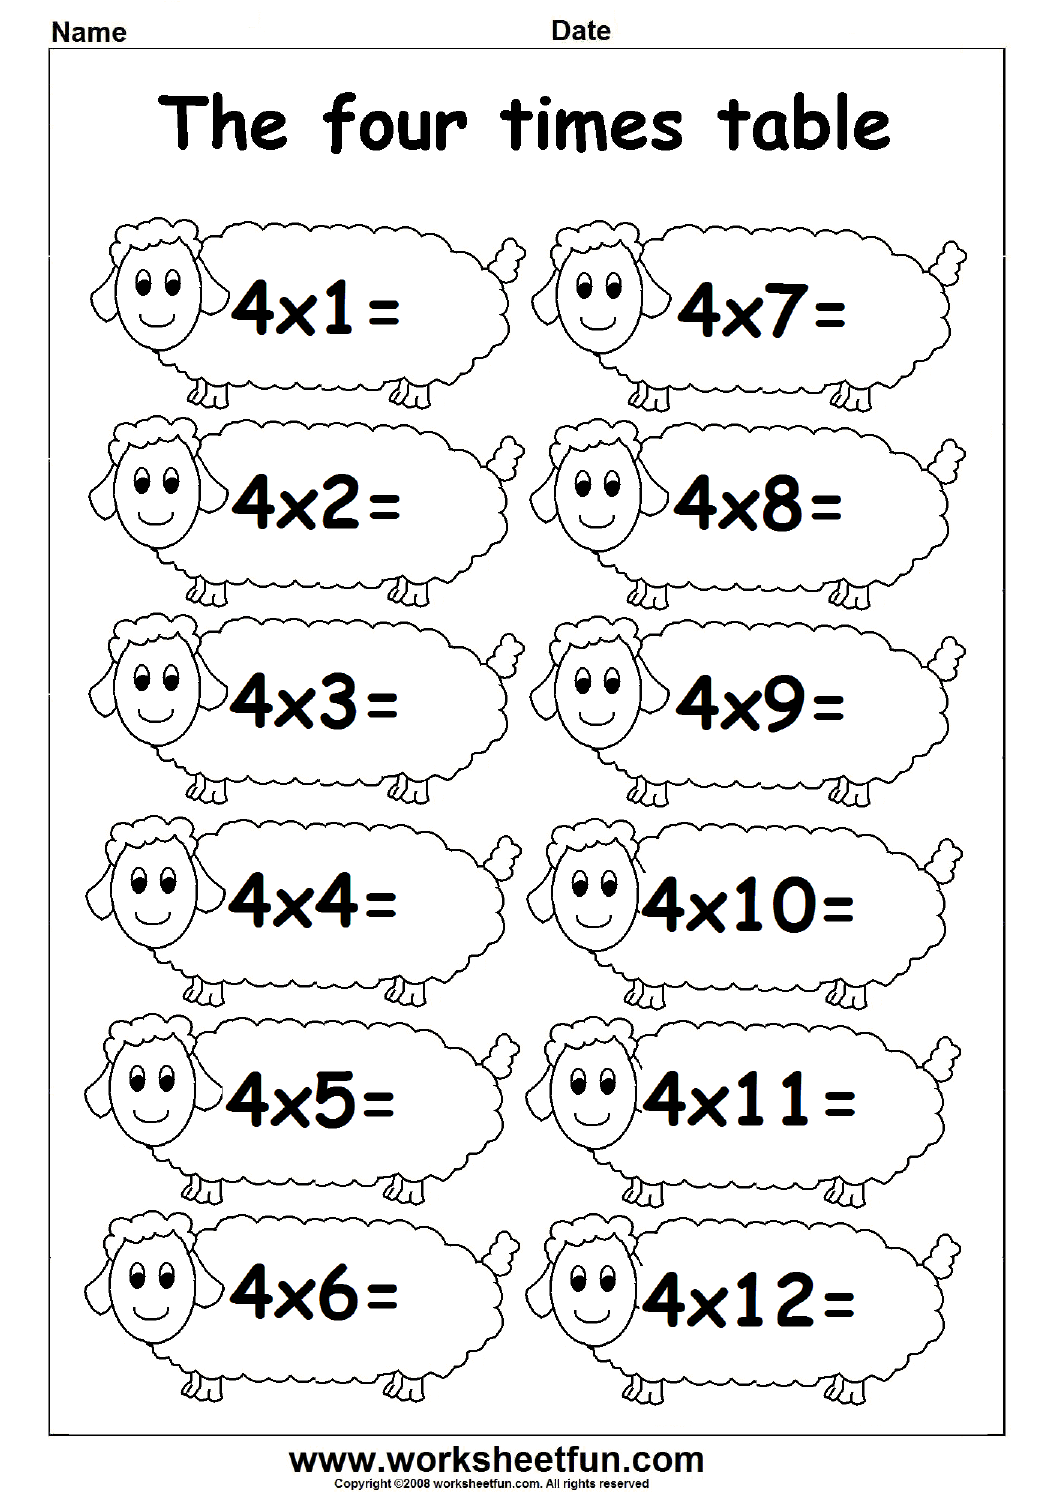 Pin by www.worksheetfun .com on Printable Worksheets   Times tables  worksheets [ 1492 x 1054 Pixel ]